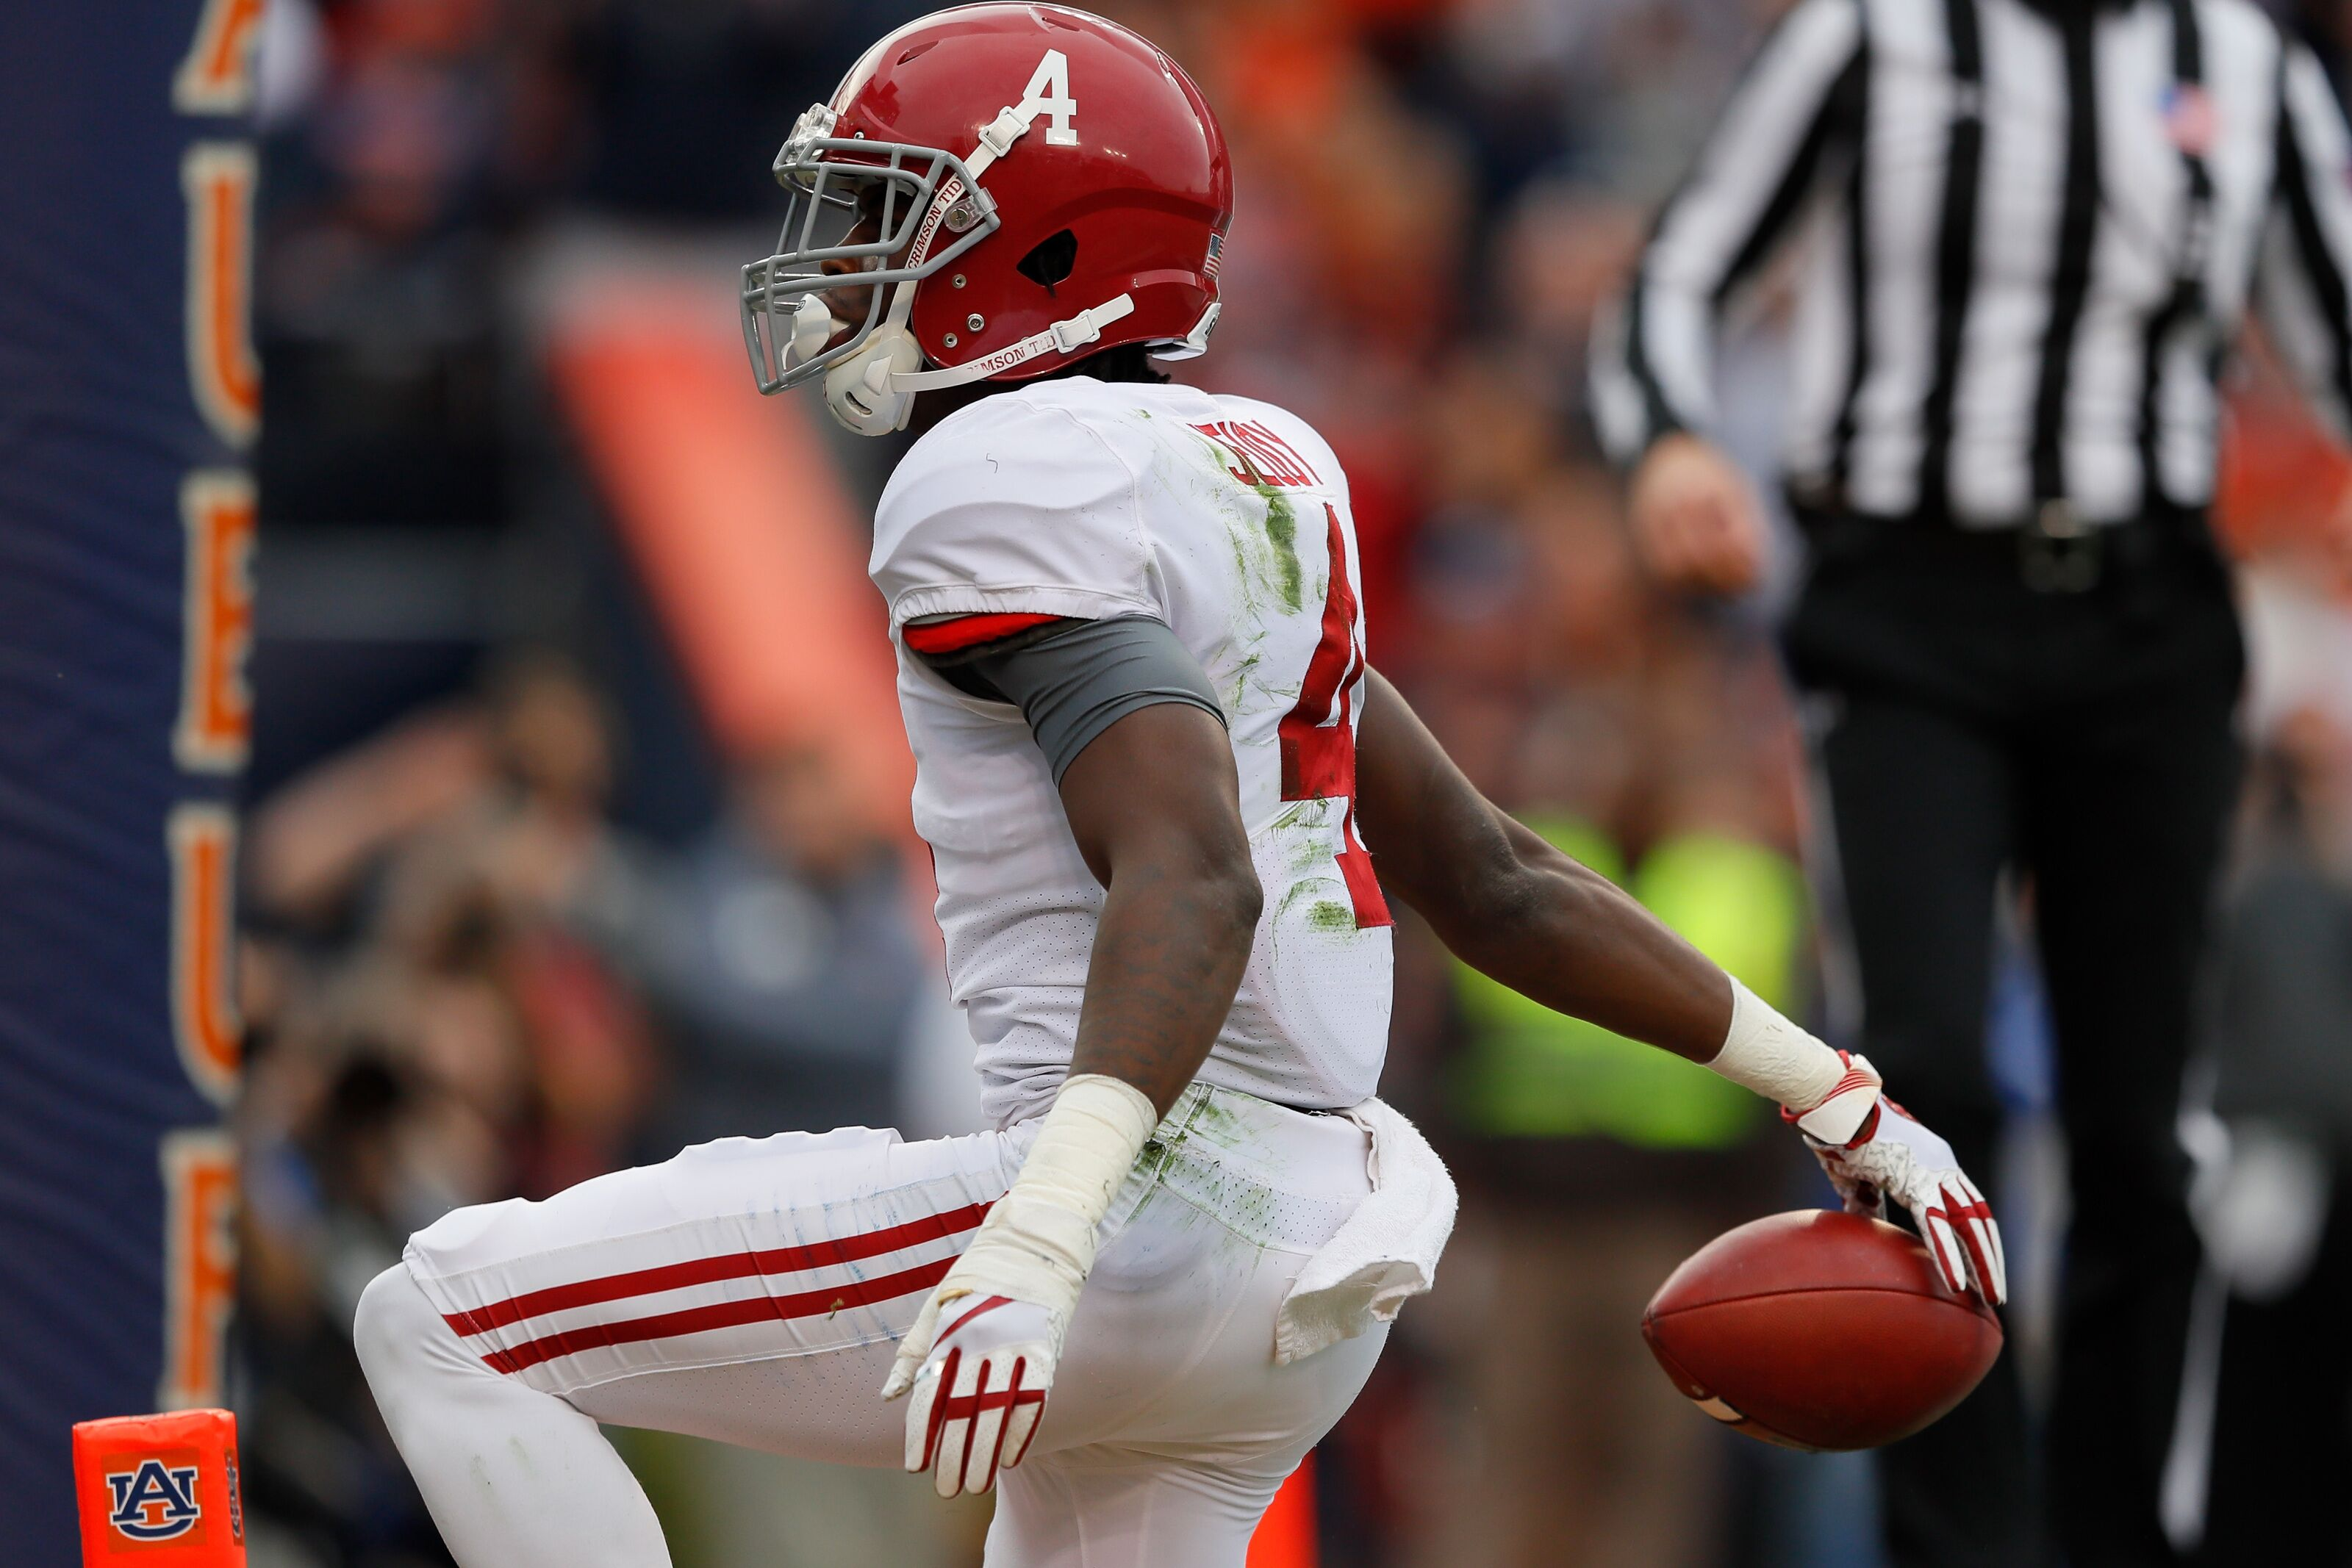 cc53e875e81 New York Giants: Giants could get next star wideout if they wait for Jerry  Jeudy